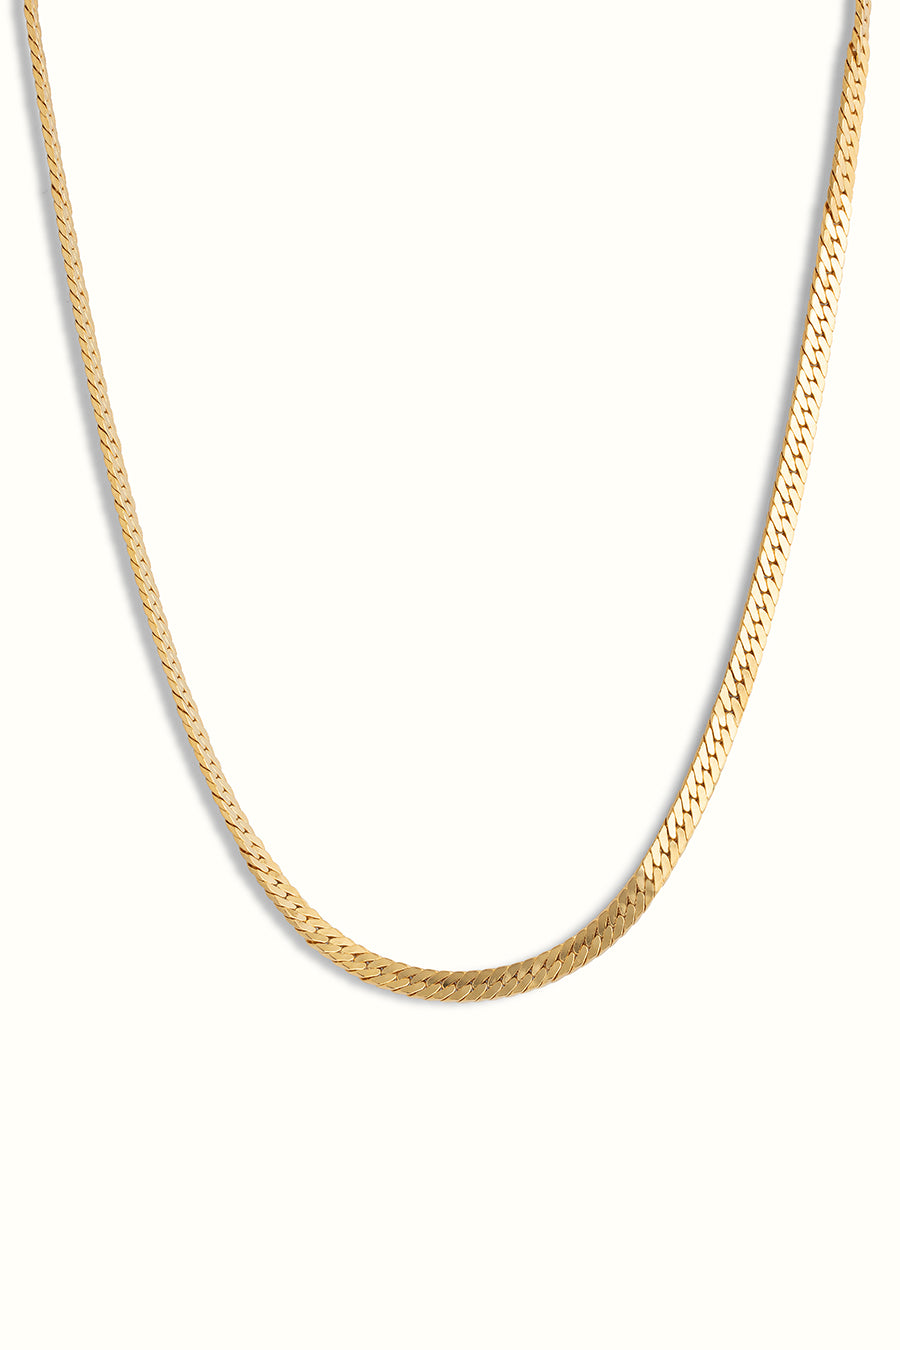 a chunky gold filled herringbone necklace on a white background